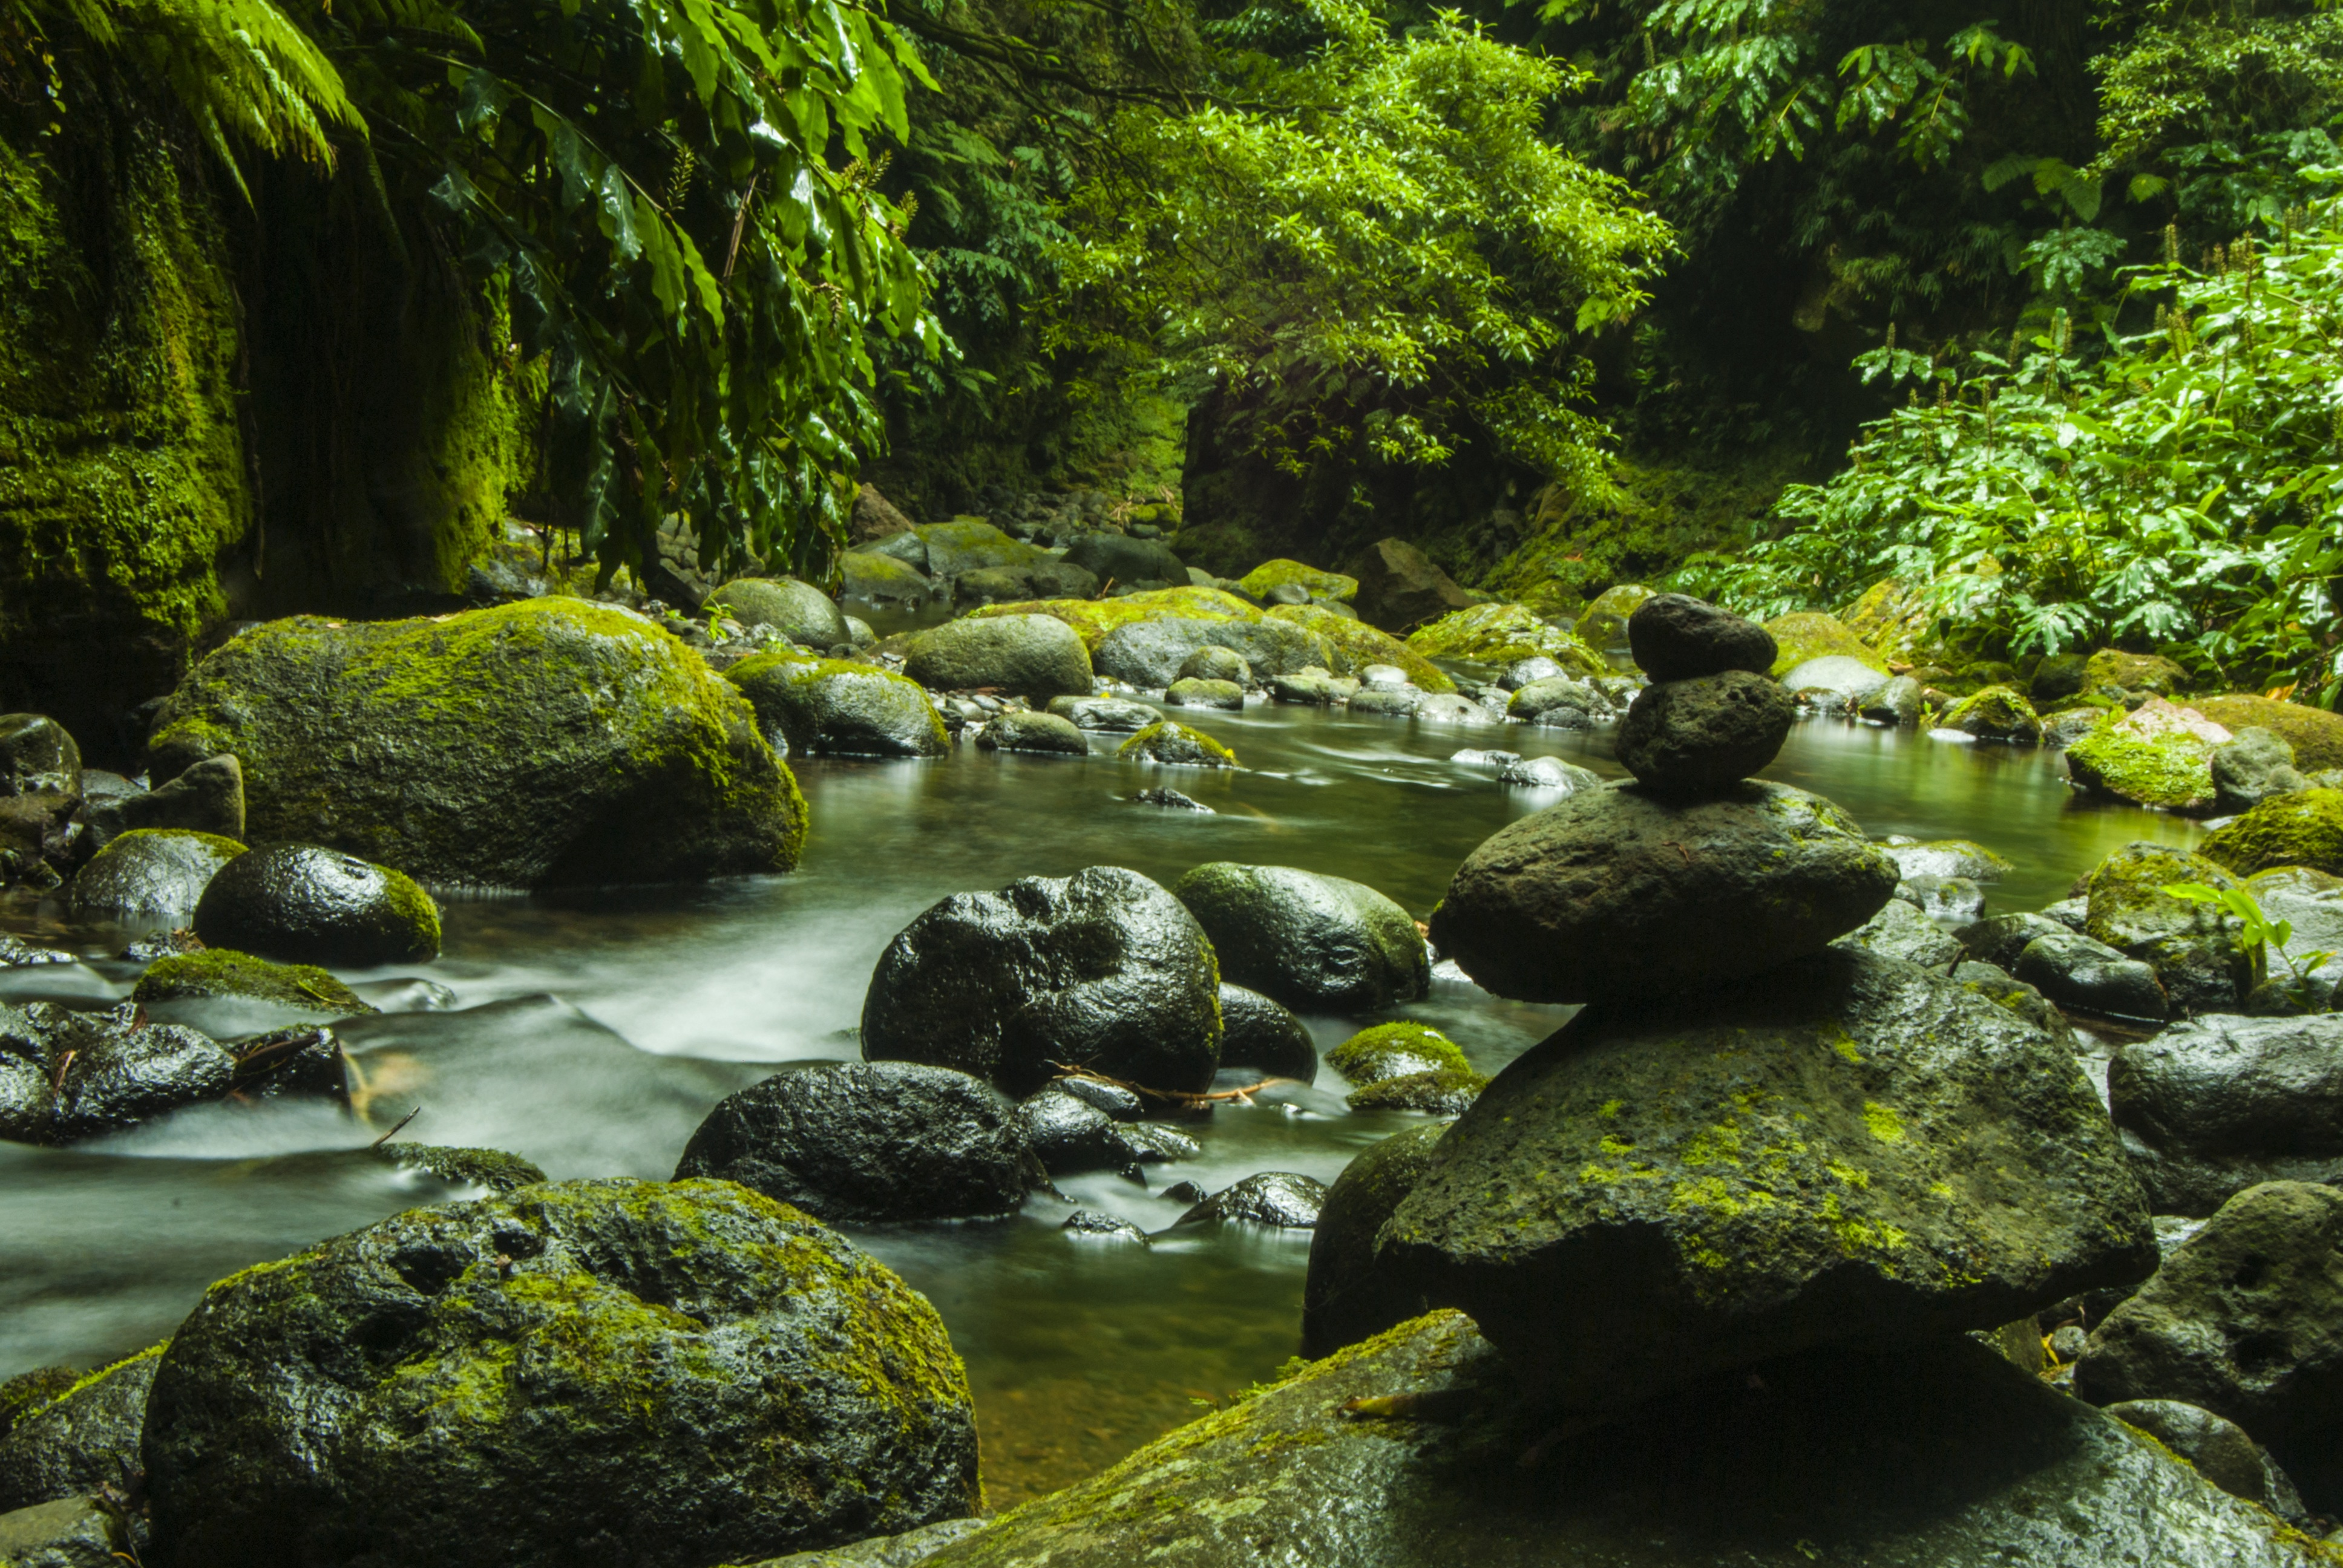 Pile of Rock in River Surrounded by Tree